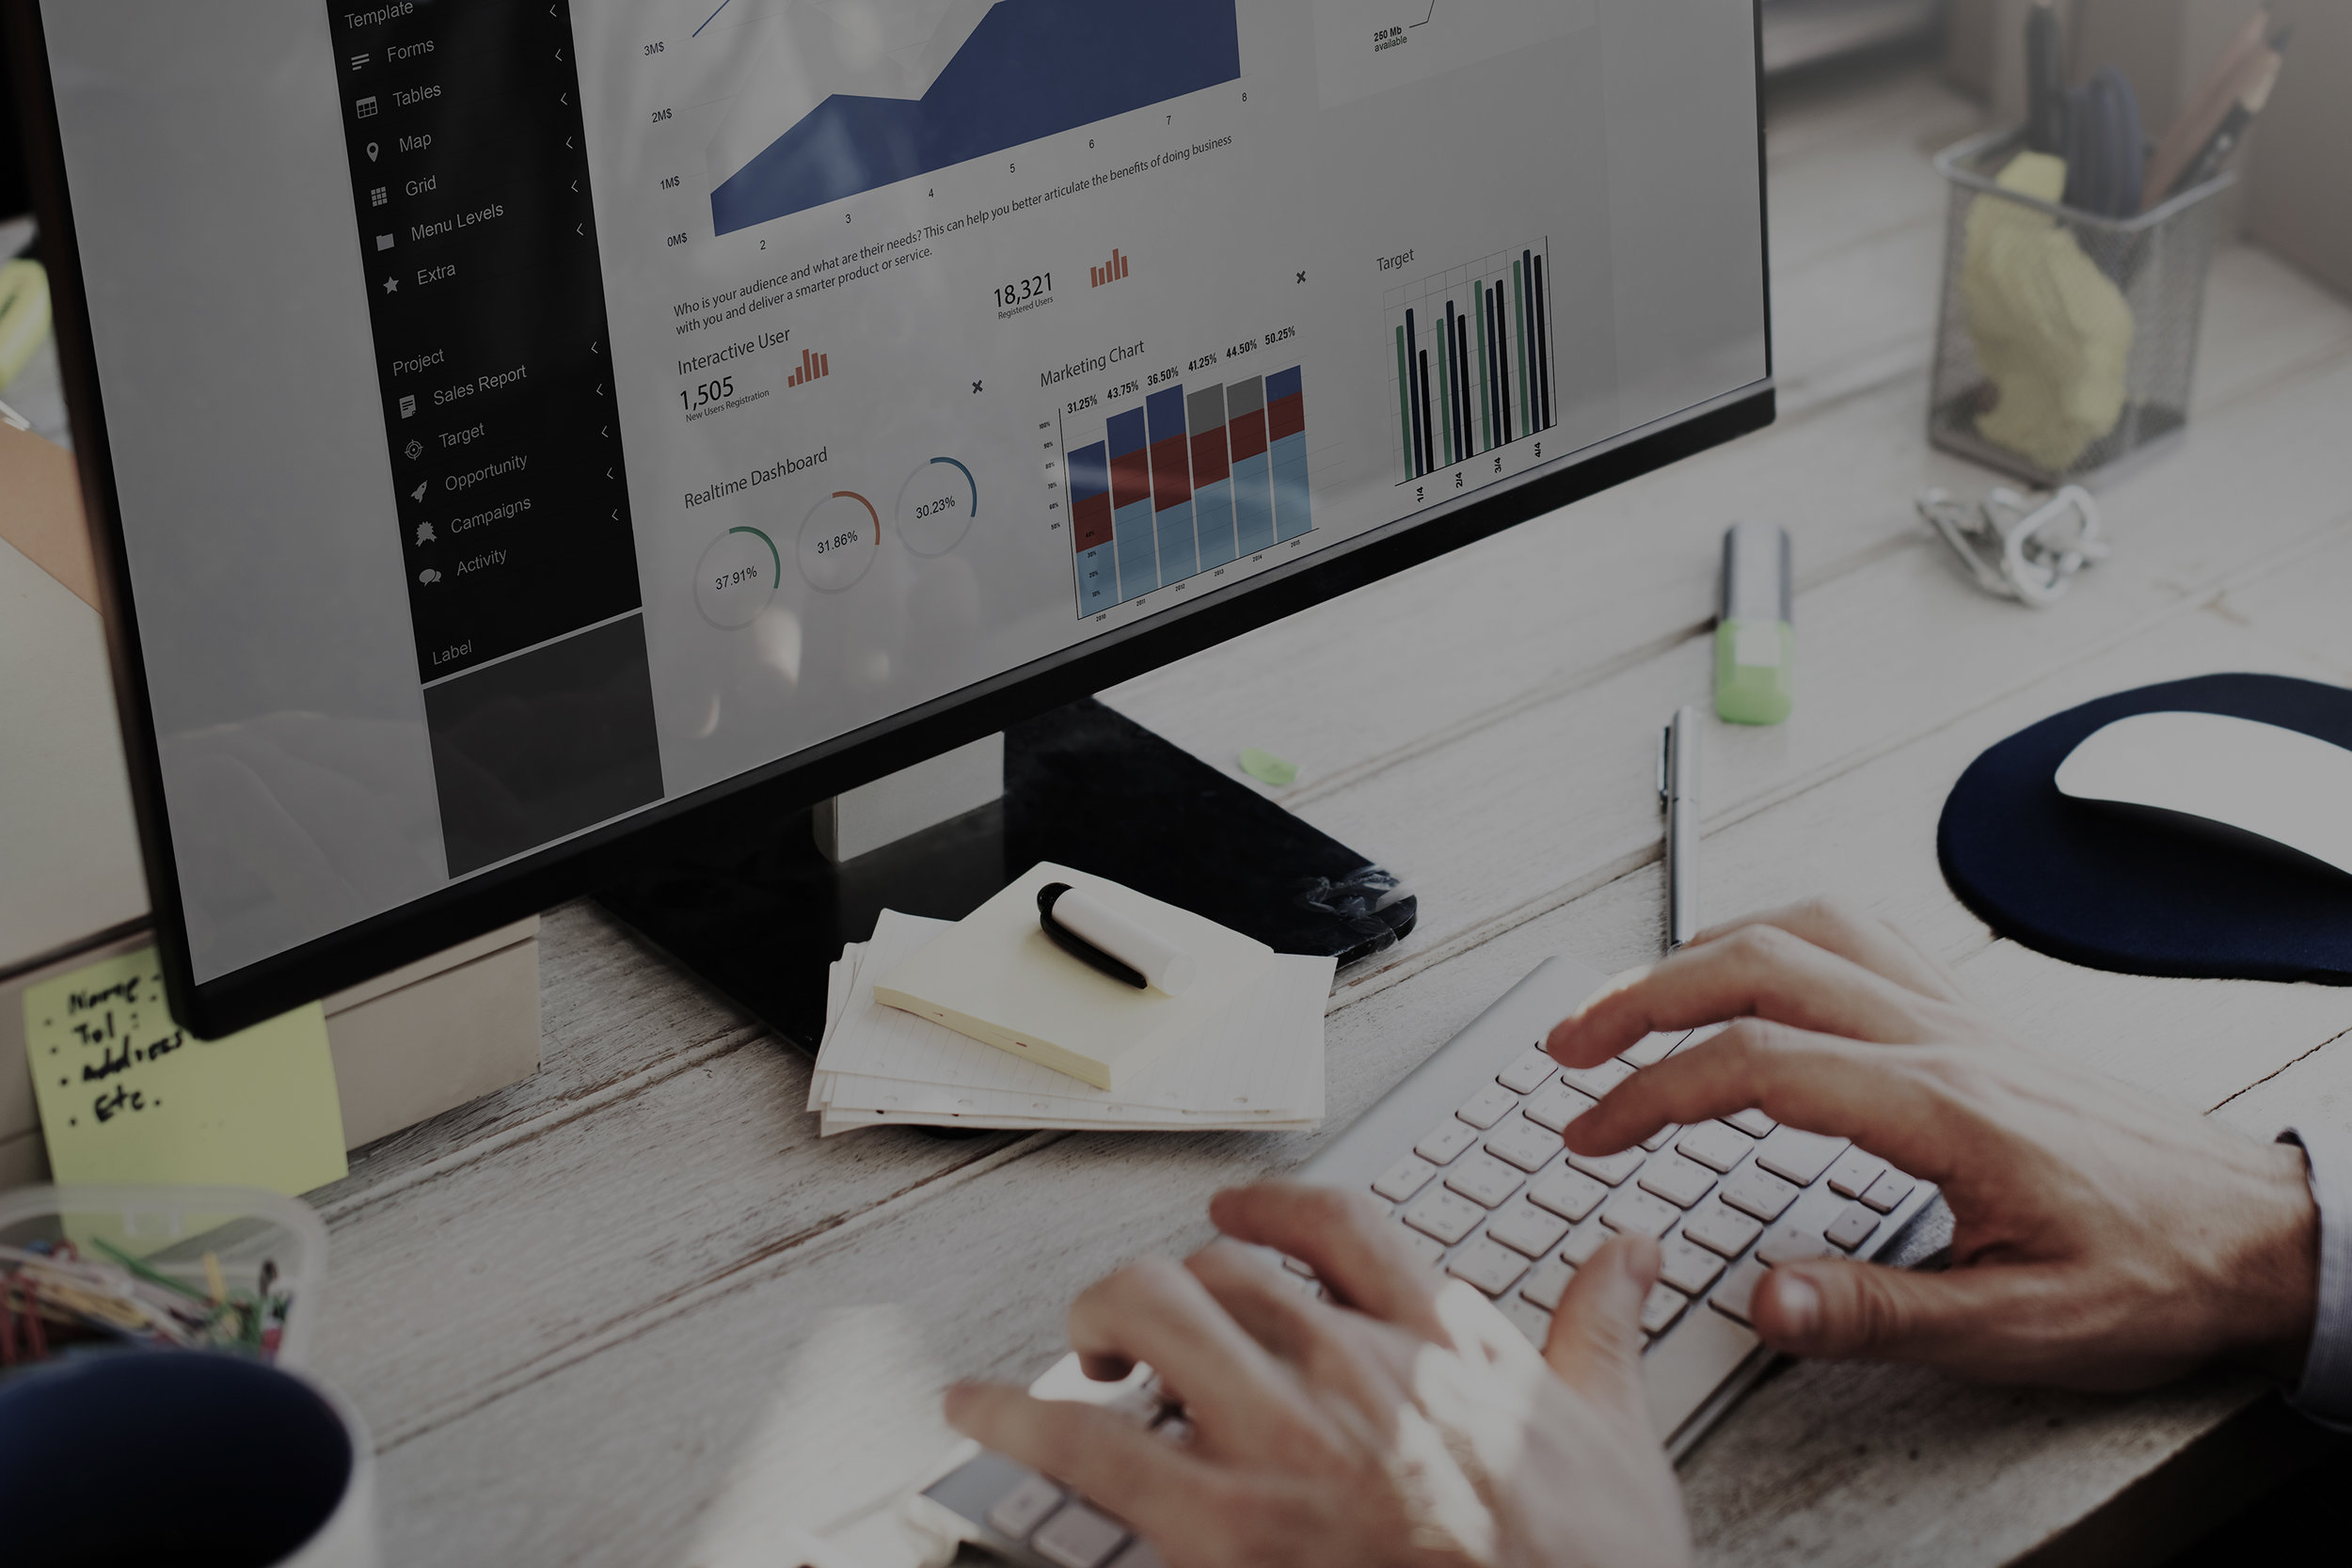 Data Strategies - Moving from backward-looking to real time impact – through the use of customer and operational data along with advanced analytics and processing power to use that data to your best advantage.